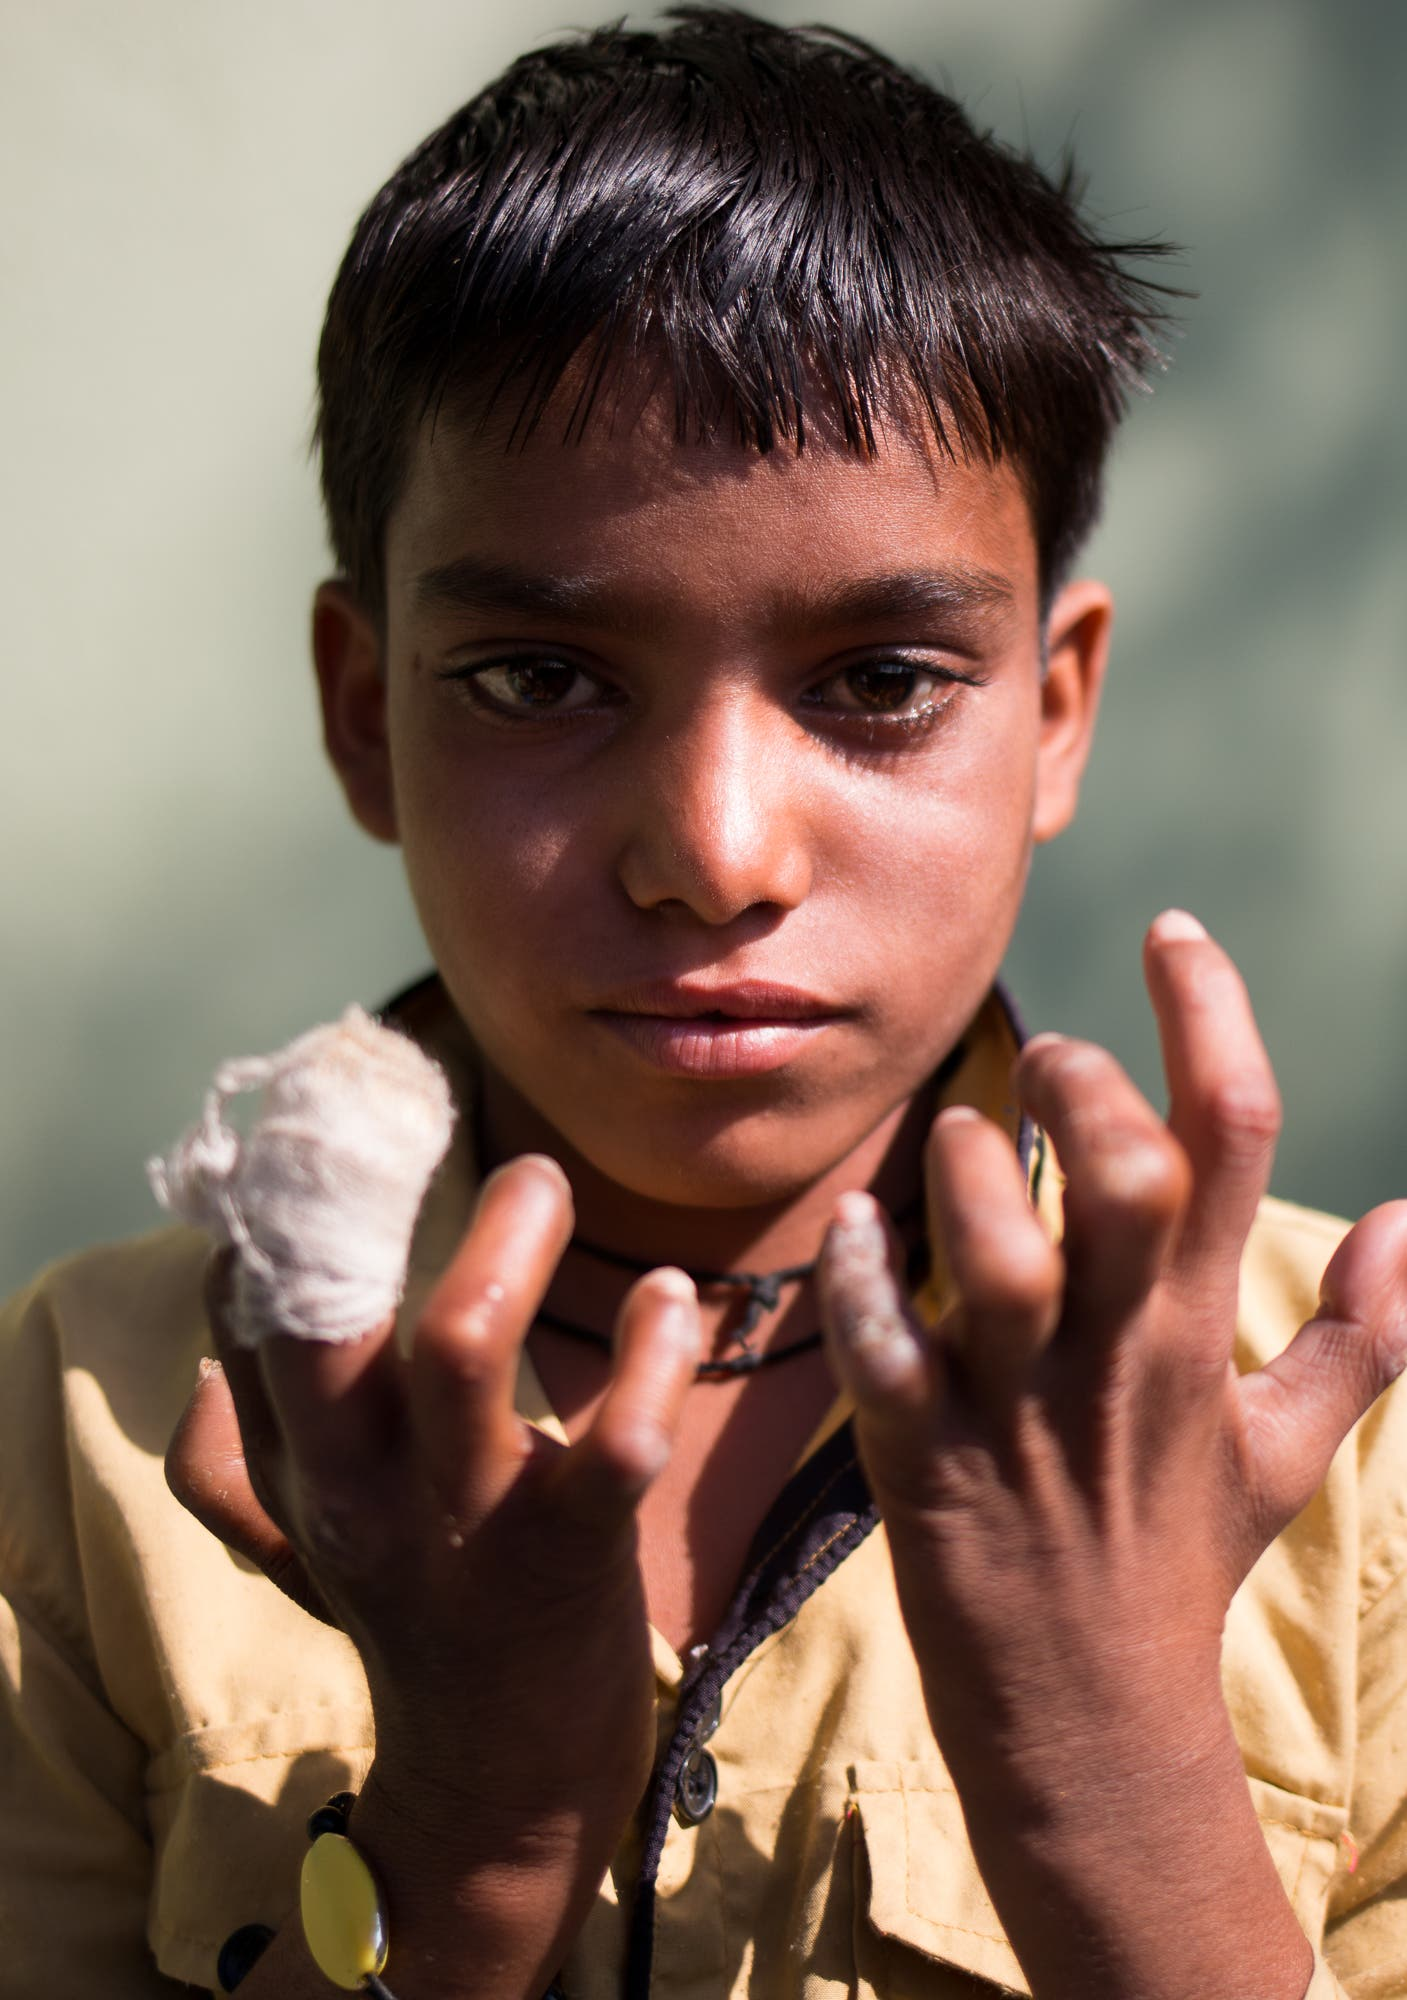 A young boy with claw hands. Once his ulcers are under control, he will have reconstructive surgery to regain use of his hands.